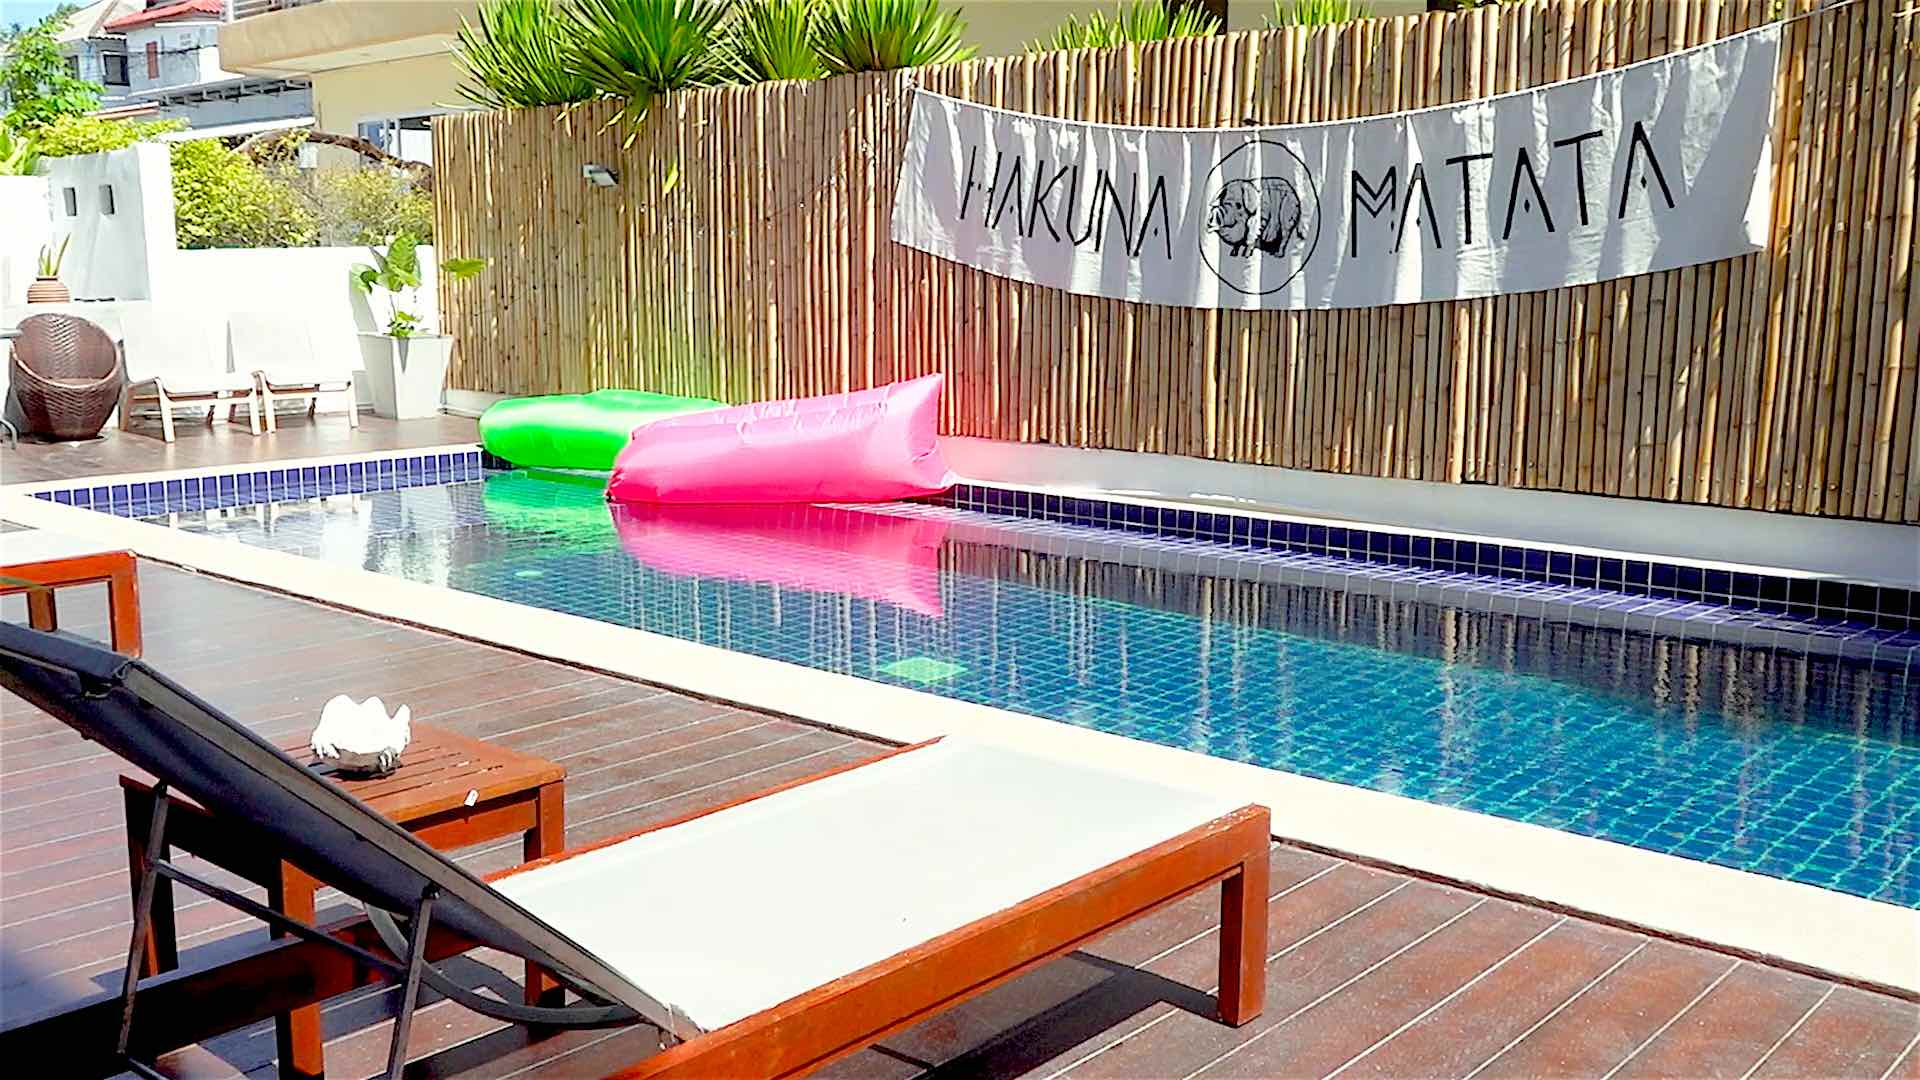 www.thefunkyturtle.com hakuna matata hostel koh tao relax by the pool